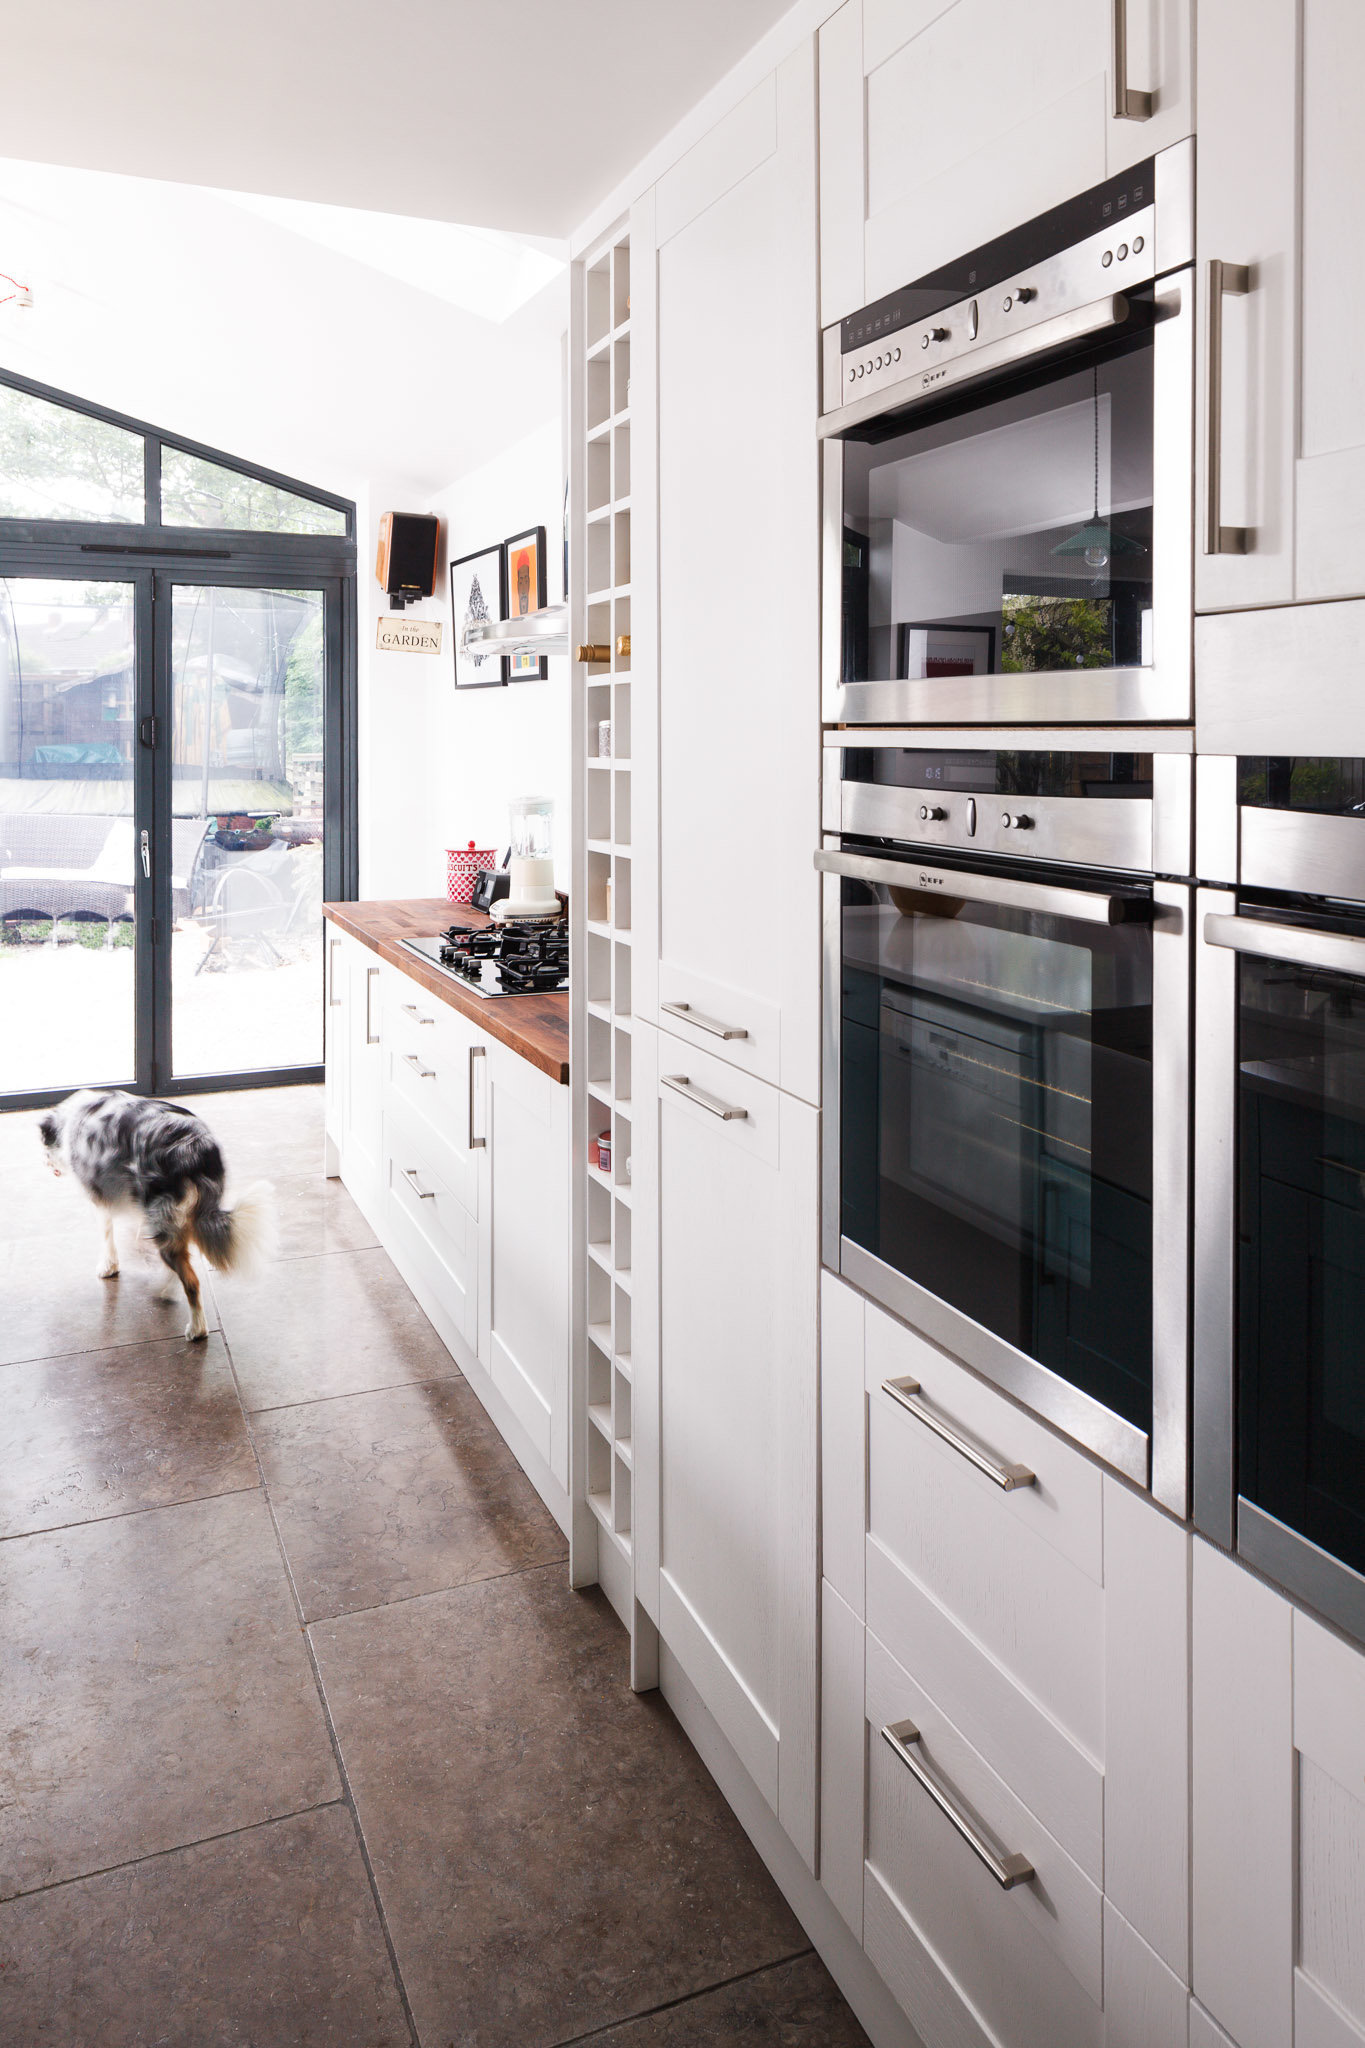 SOLID WOOD KITCHEN CABINETS - CASE STUDY